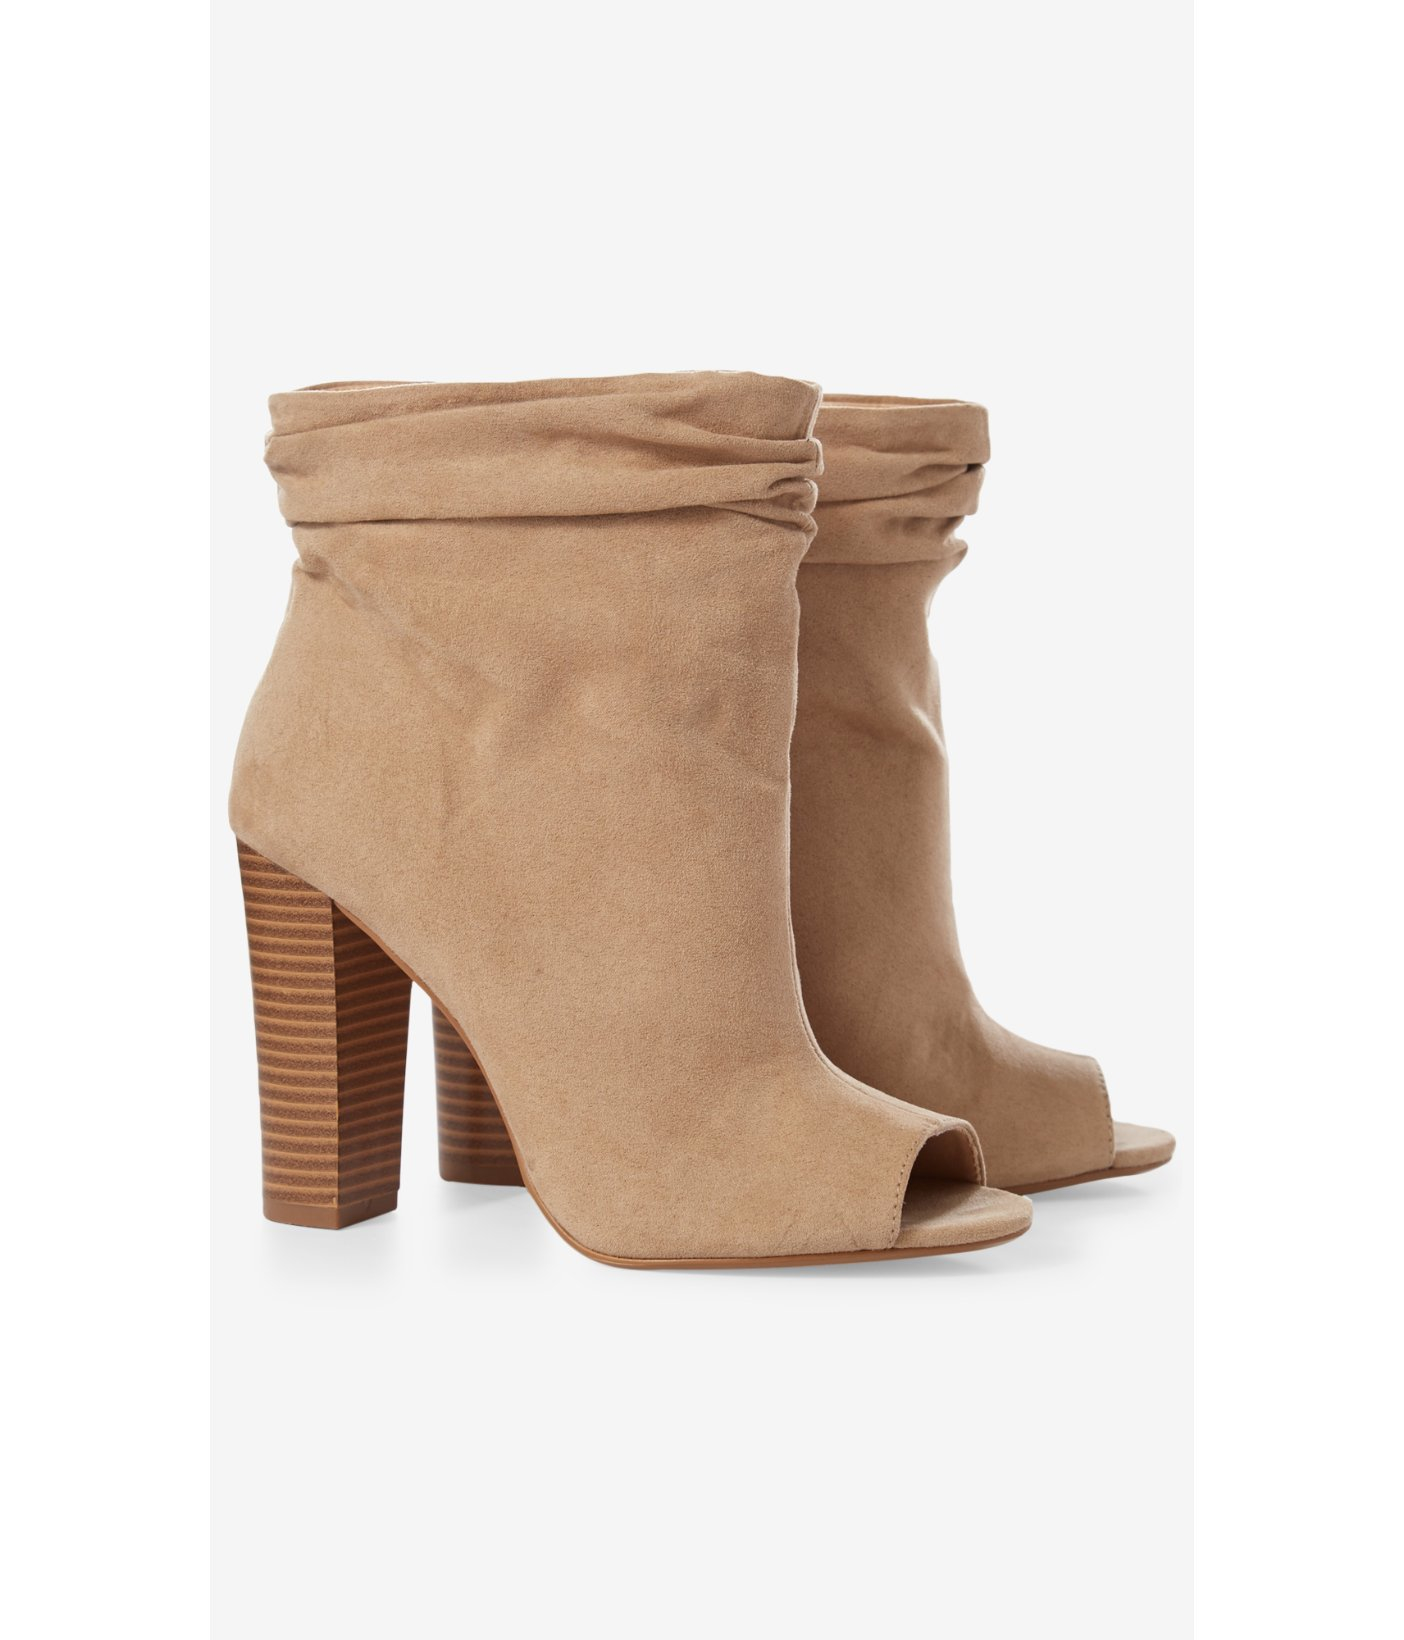 16a239c2aaa01 ... Strap Ankle Booties Express online shop 45bcb 7dc74  Gallery. Women s Peep  Toe Booties get cheap 41156 a5a62 ...